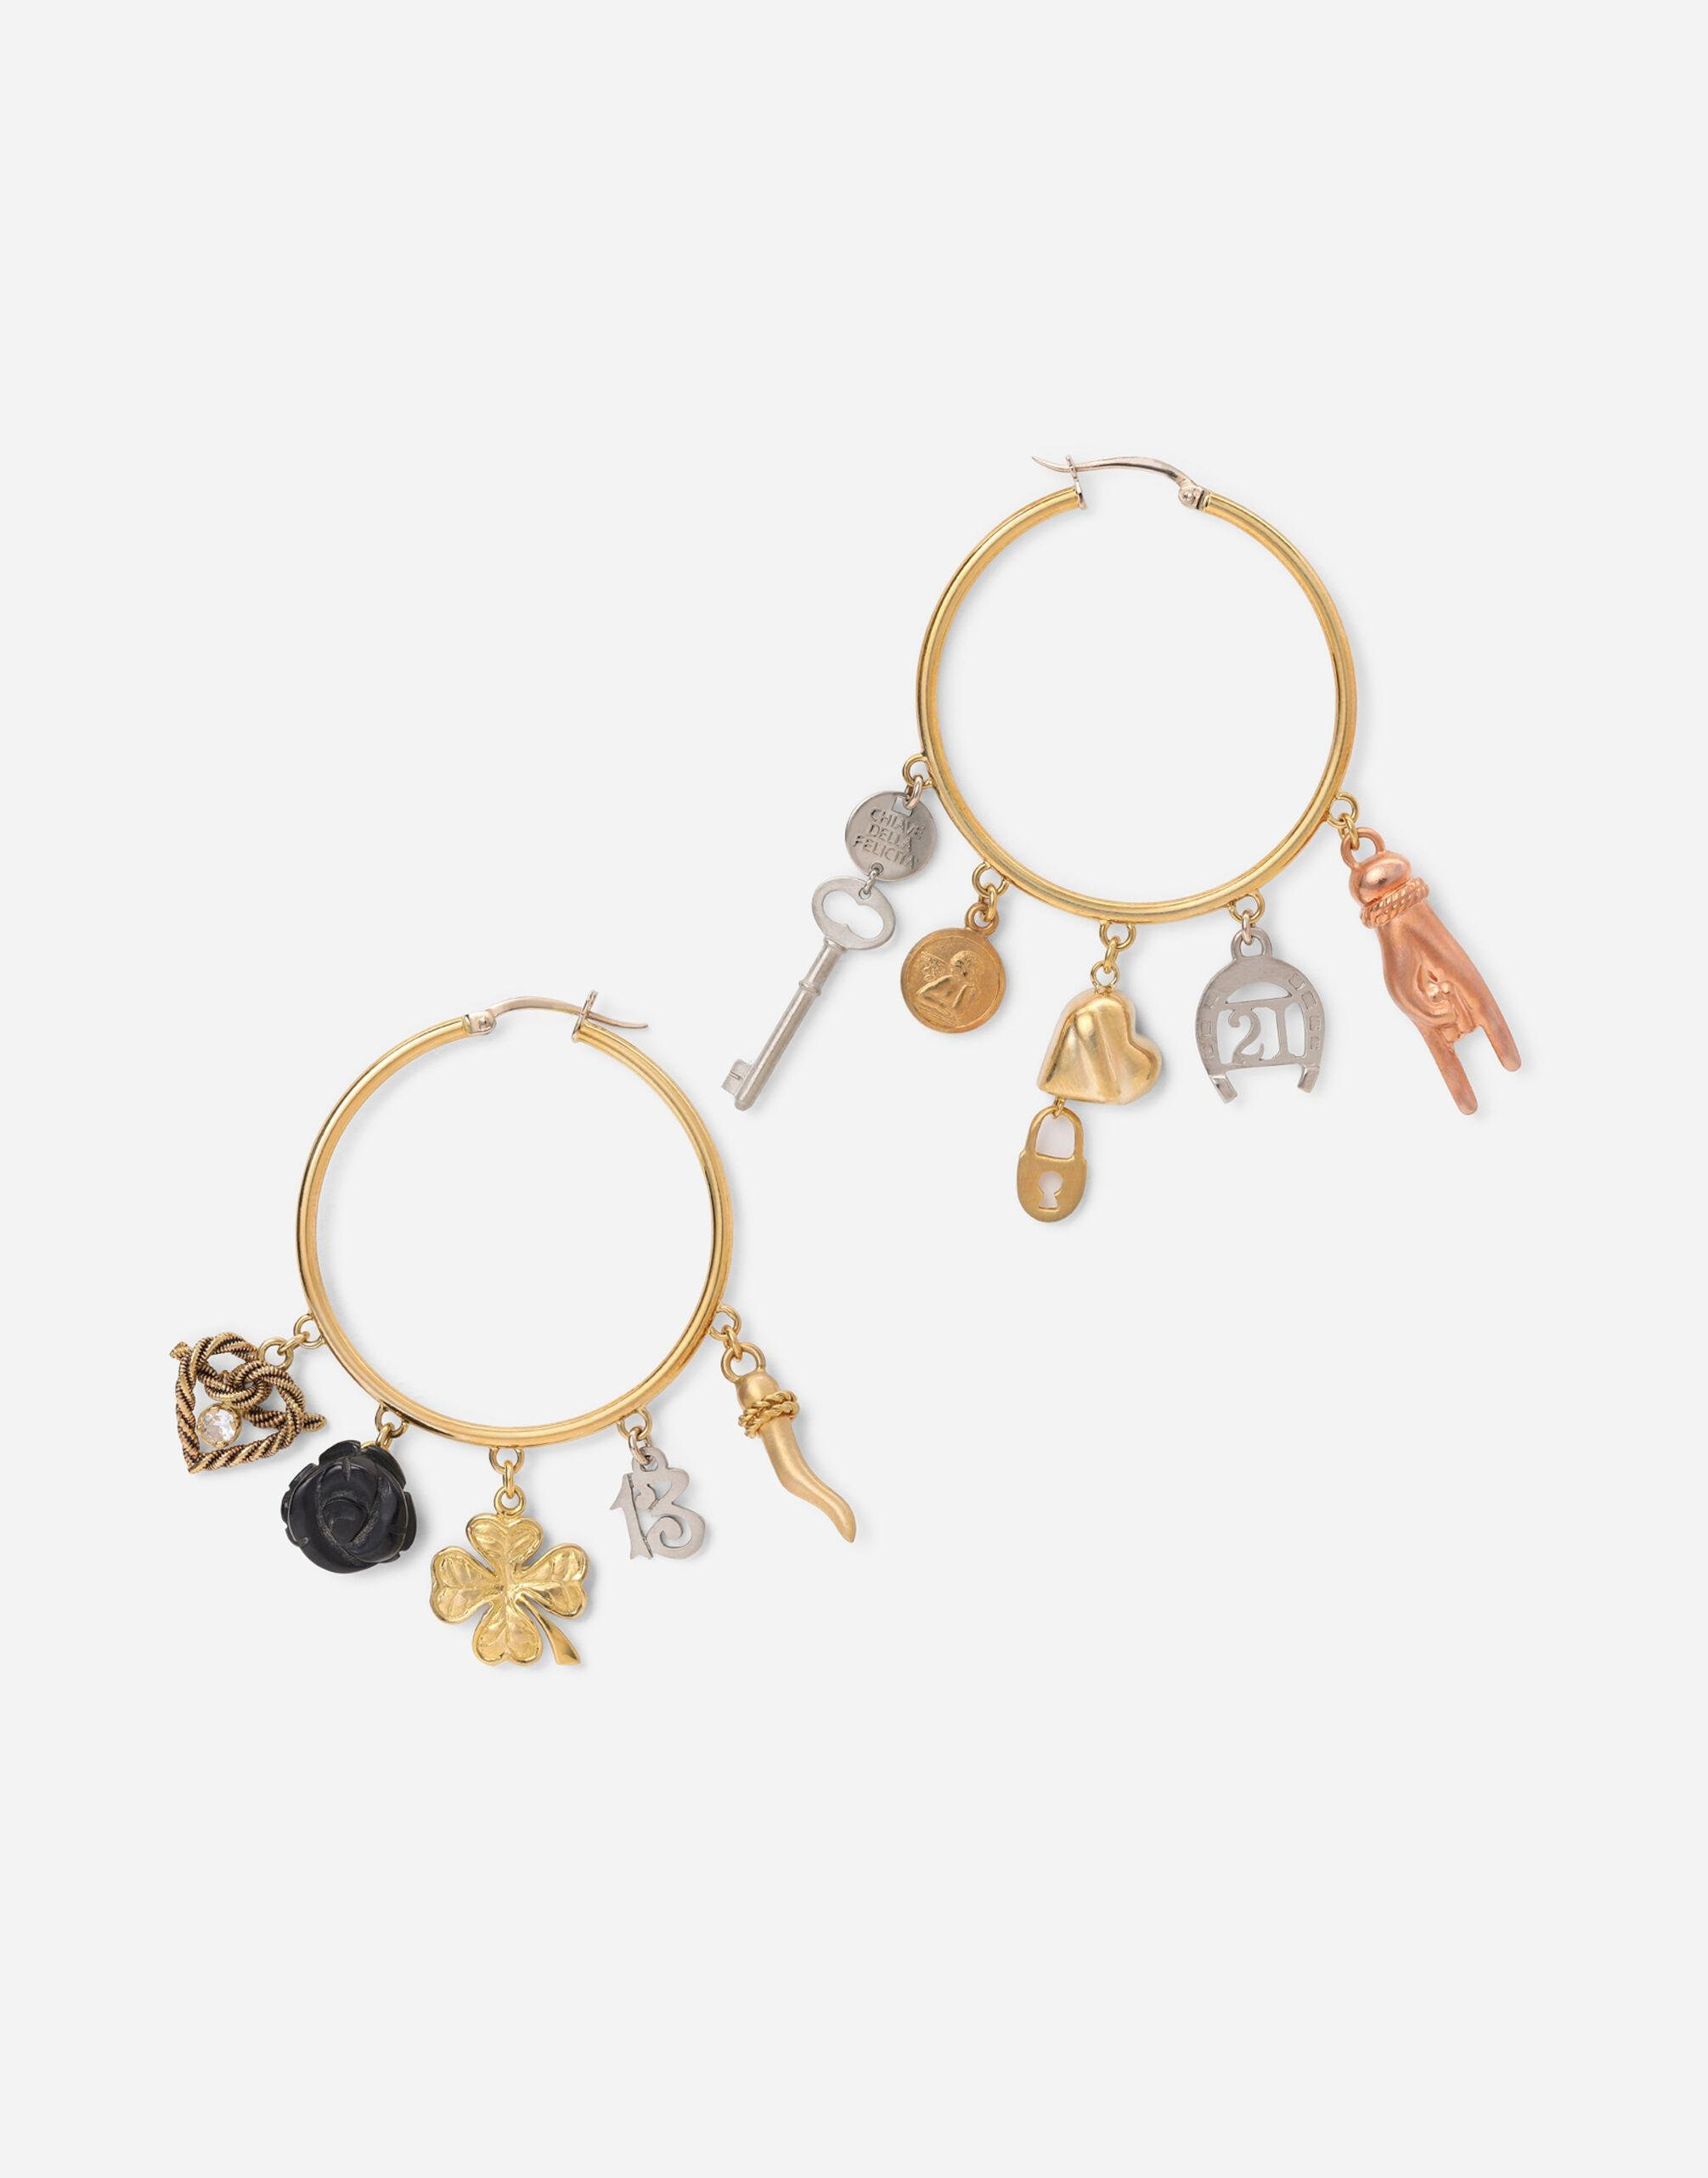 Good Luck earrings in 18kt yellow, white and red gold with lucky charms